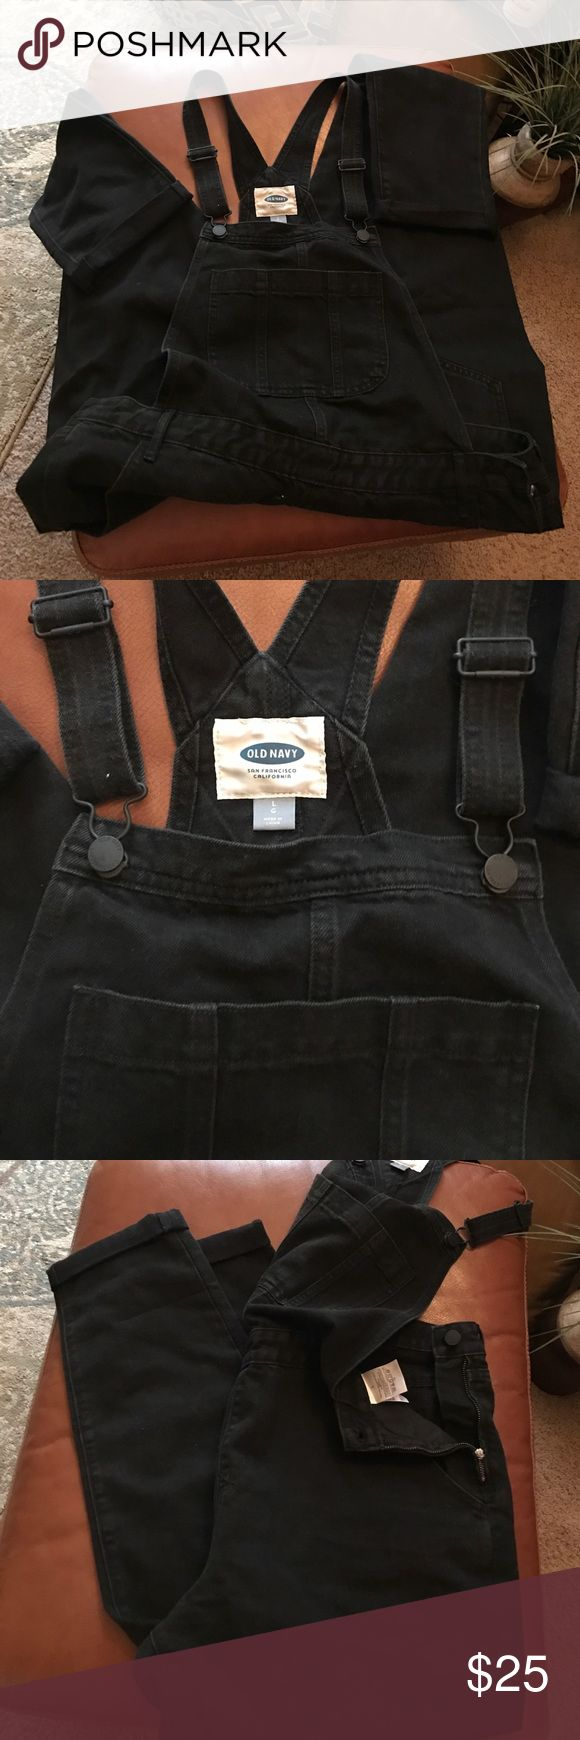 💕Brand new Old Navy black denim overalls 💋❤💕 NWOT firm price brand new not worn. Black size Large Old Navy overalls . Inseam 27 with cuffs 29 without. Zip up and button sides. Sooooo cute! 🌺💋❤💕🌸 19- 20 inches across waist Old Navy Jeans Overalls